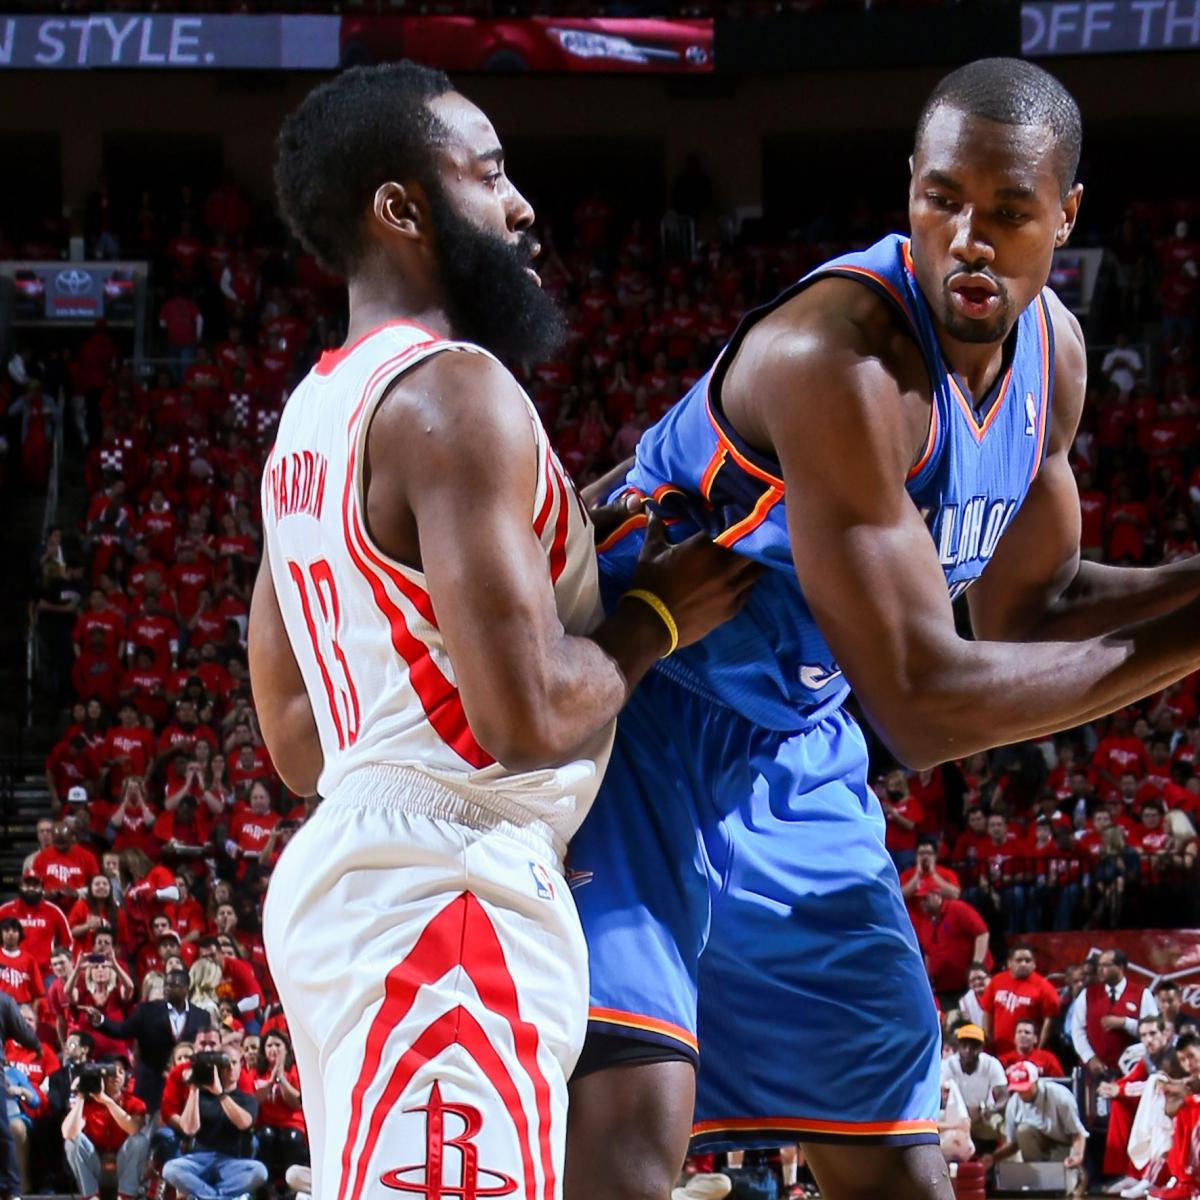 Rockets Vs Okc Game 6: Thunder Vs. Rockets Game 6: Live Score, Highlights And